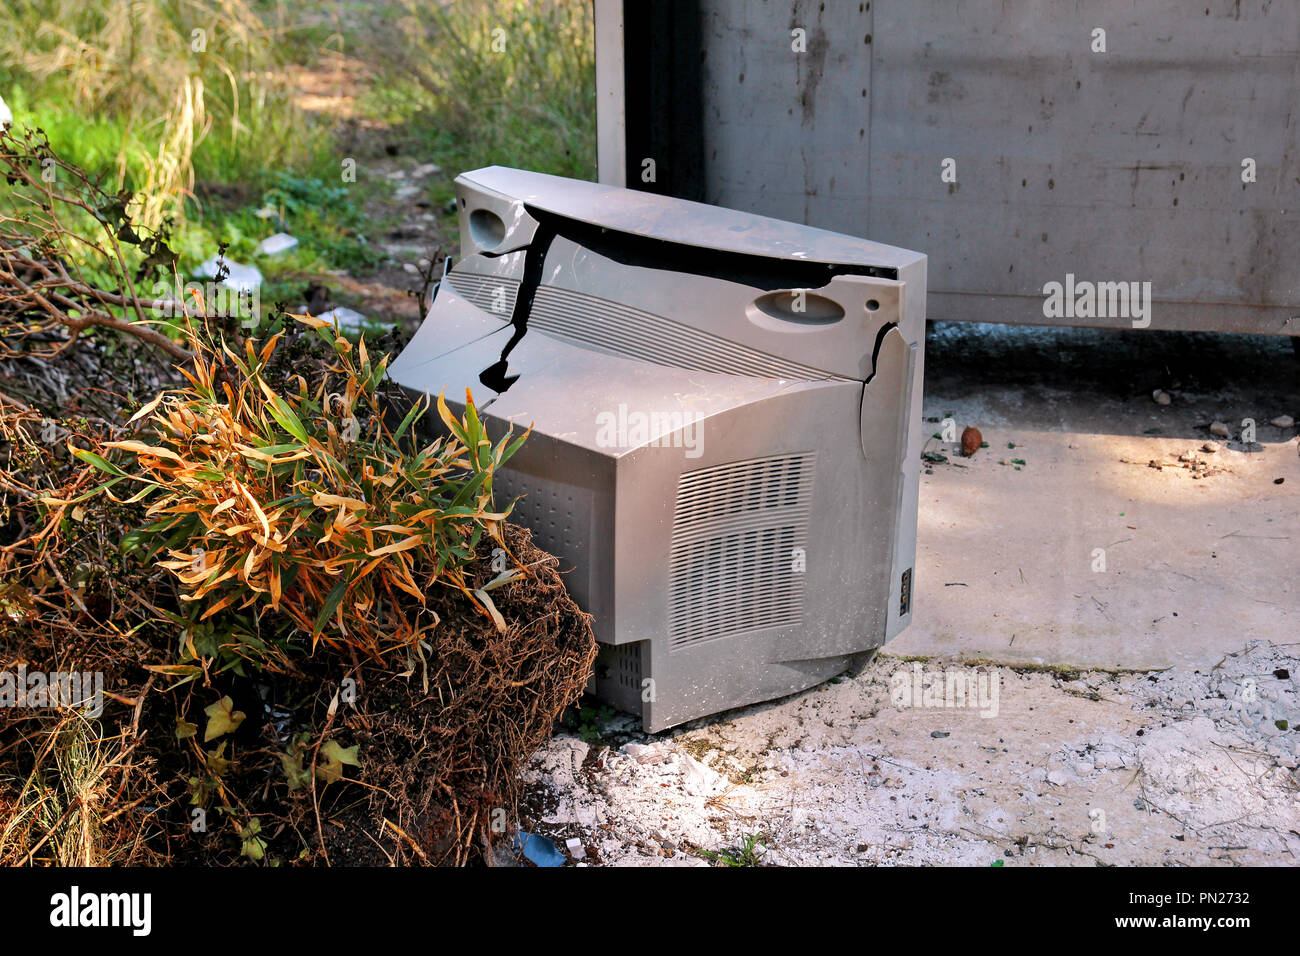 Discard old TV sets on a street, television near the garbage container thrown, natural environment. A TV thrown out with the garbage. Throwing out - Stock Image